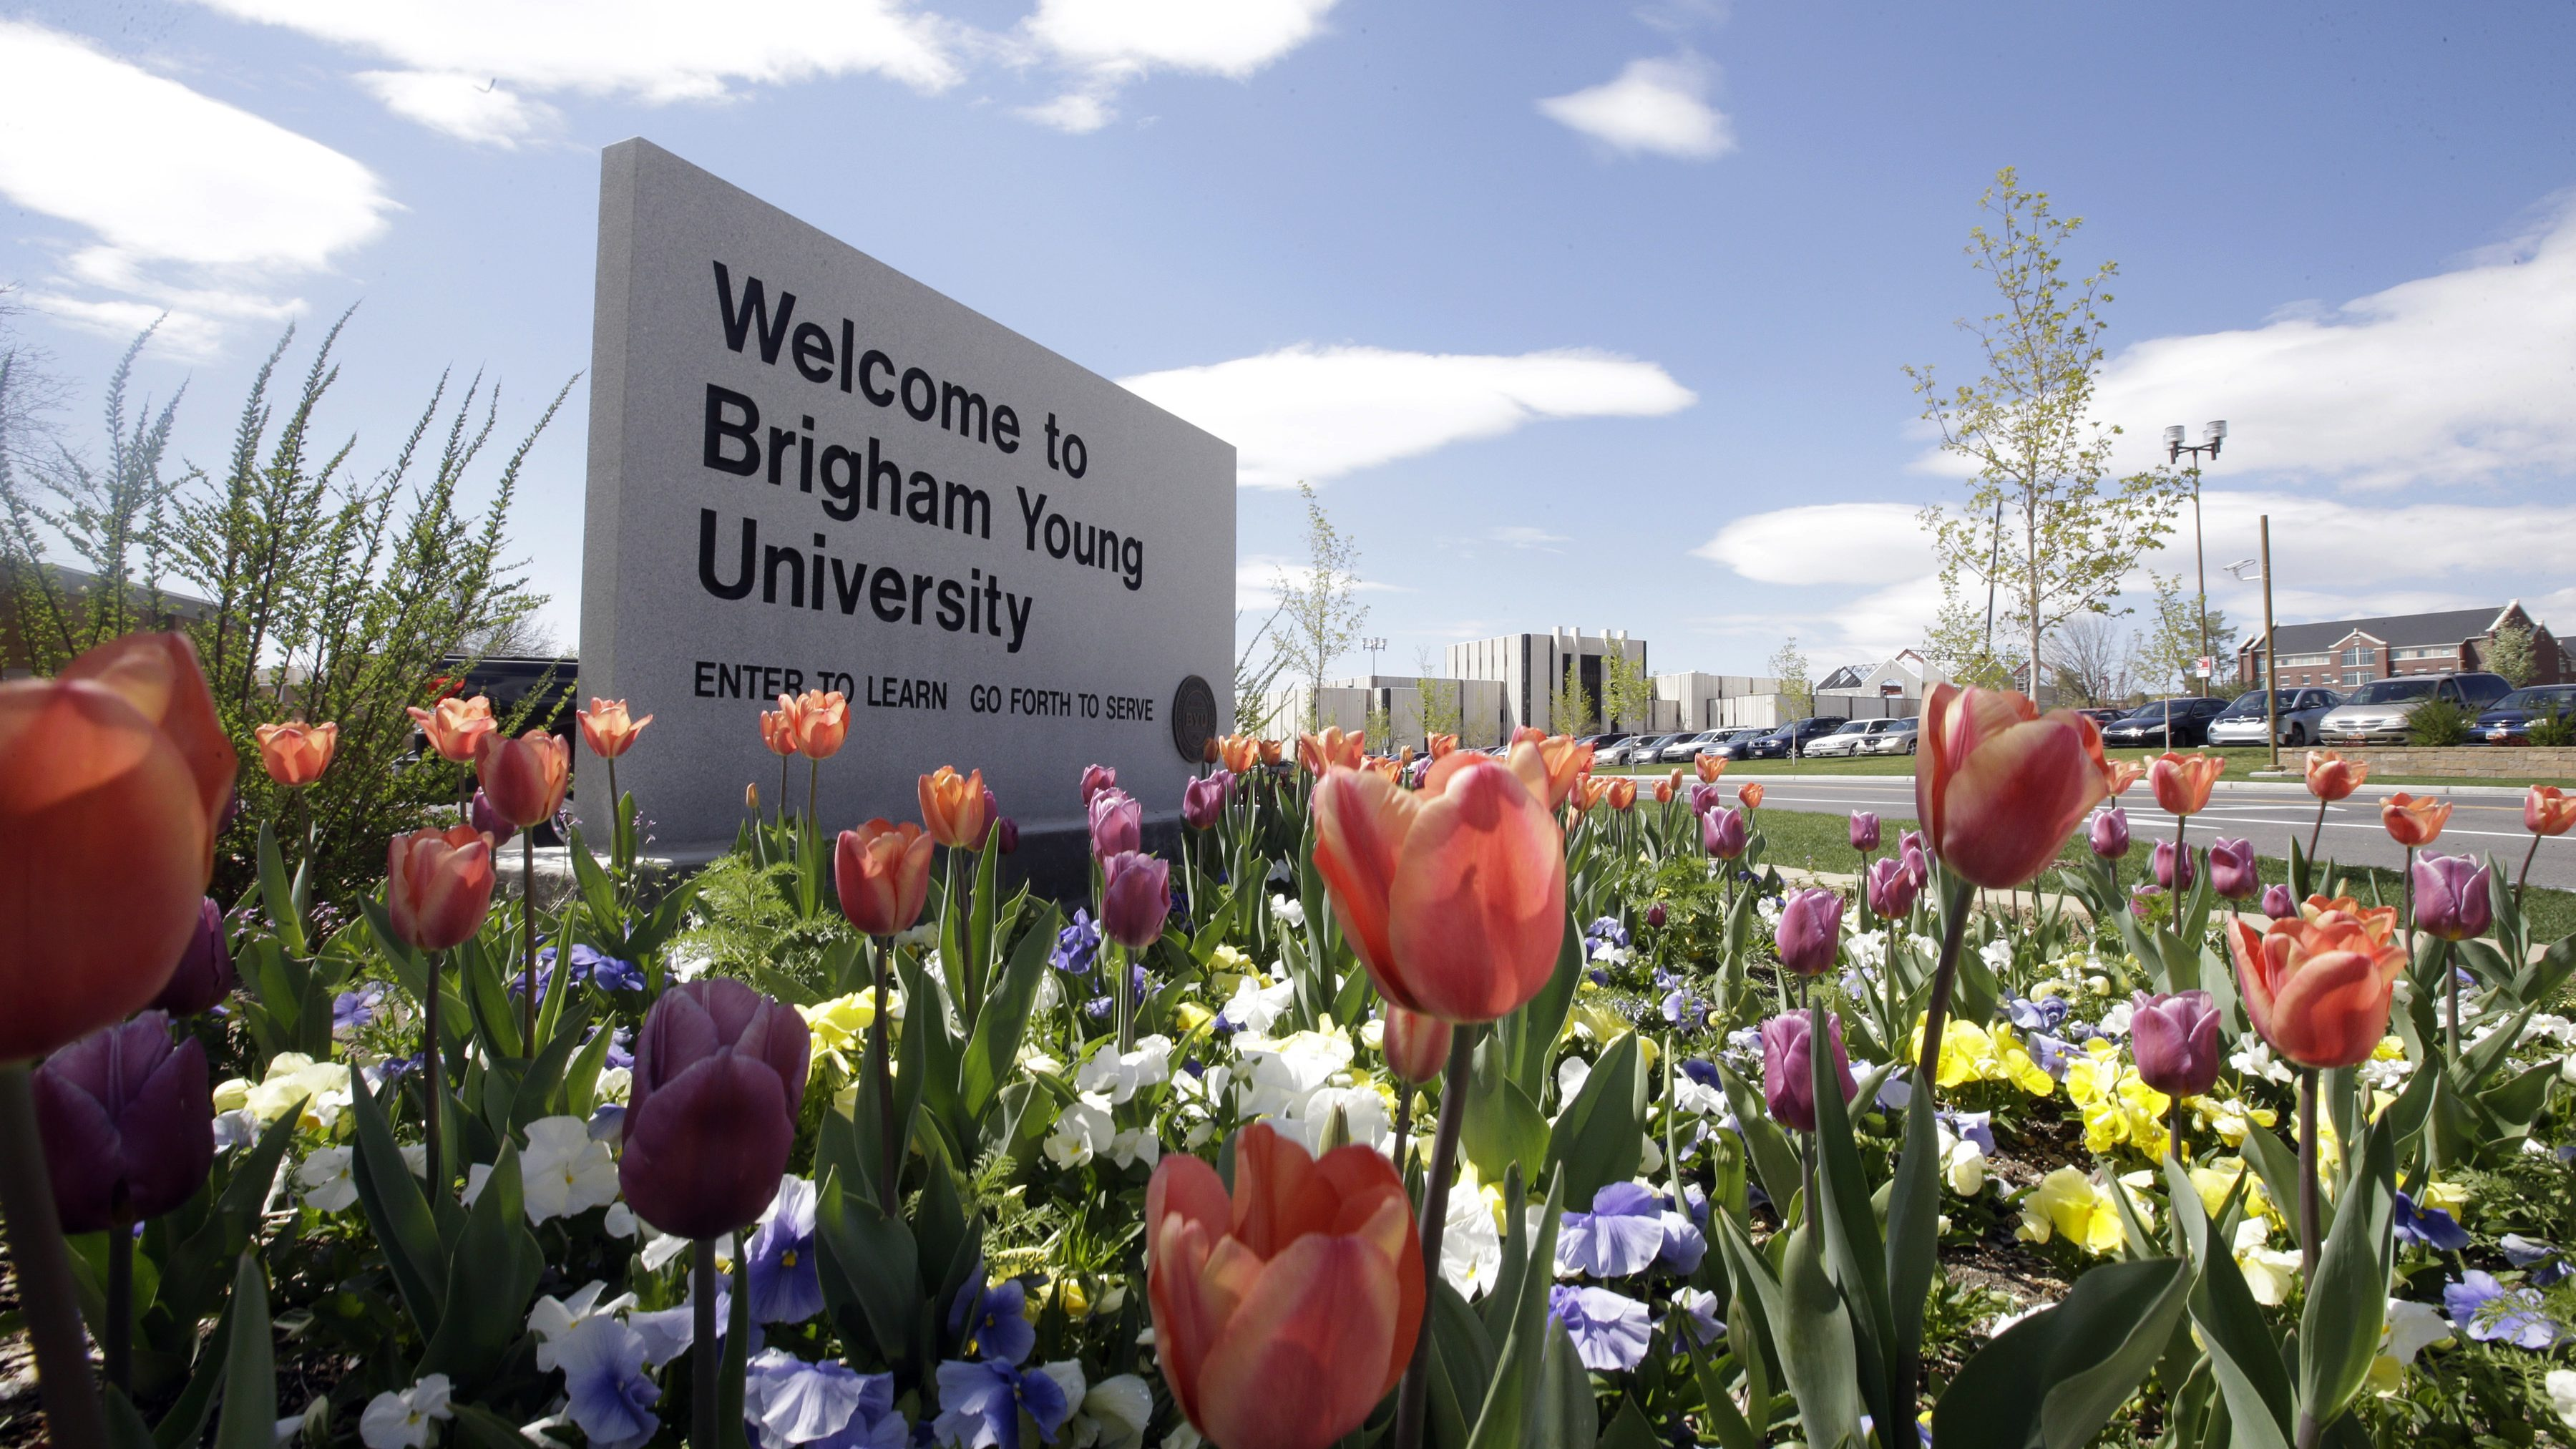 A welcome sign to Brigham Young University in Provo, Utah.